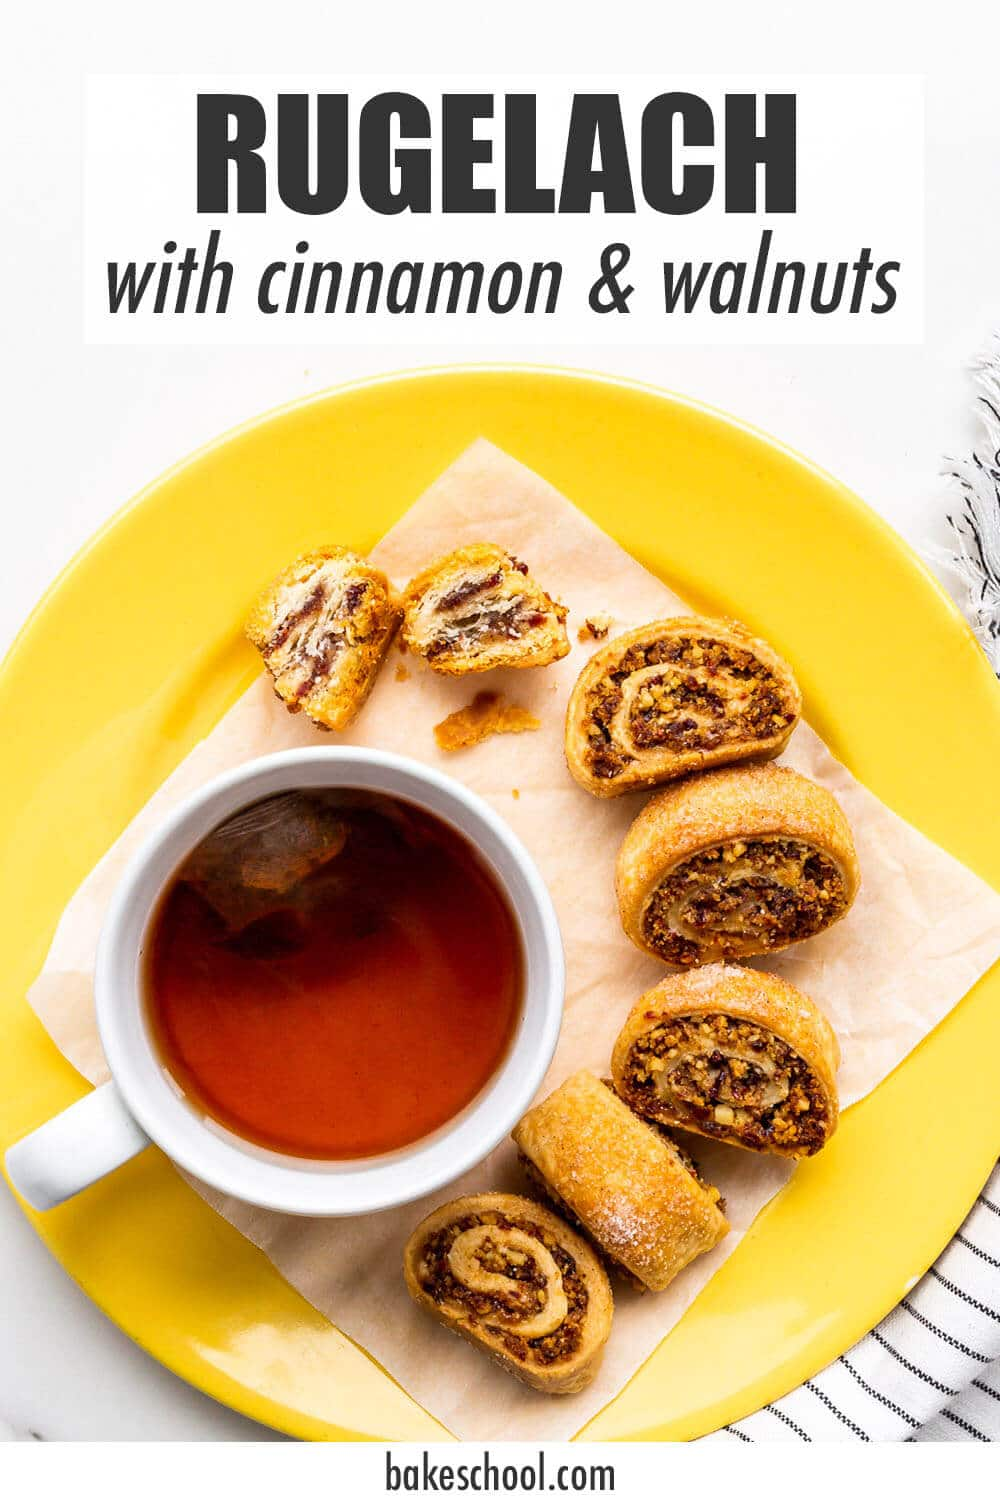 Rugelach on a yellow plate with a cup of tea.